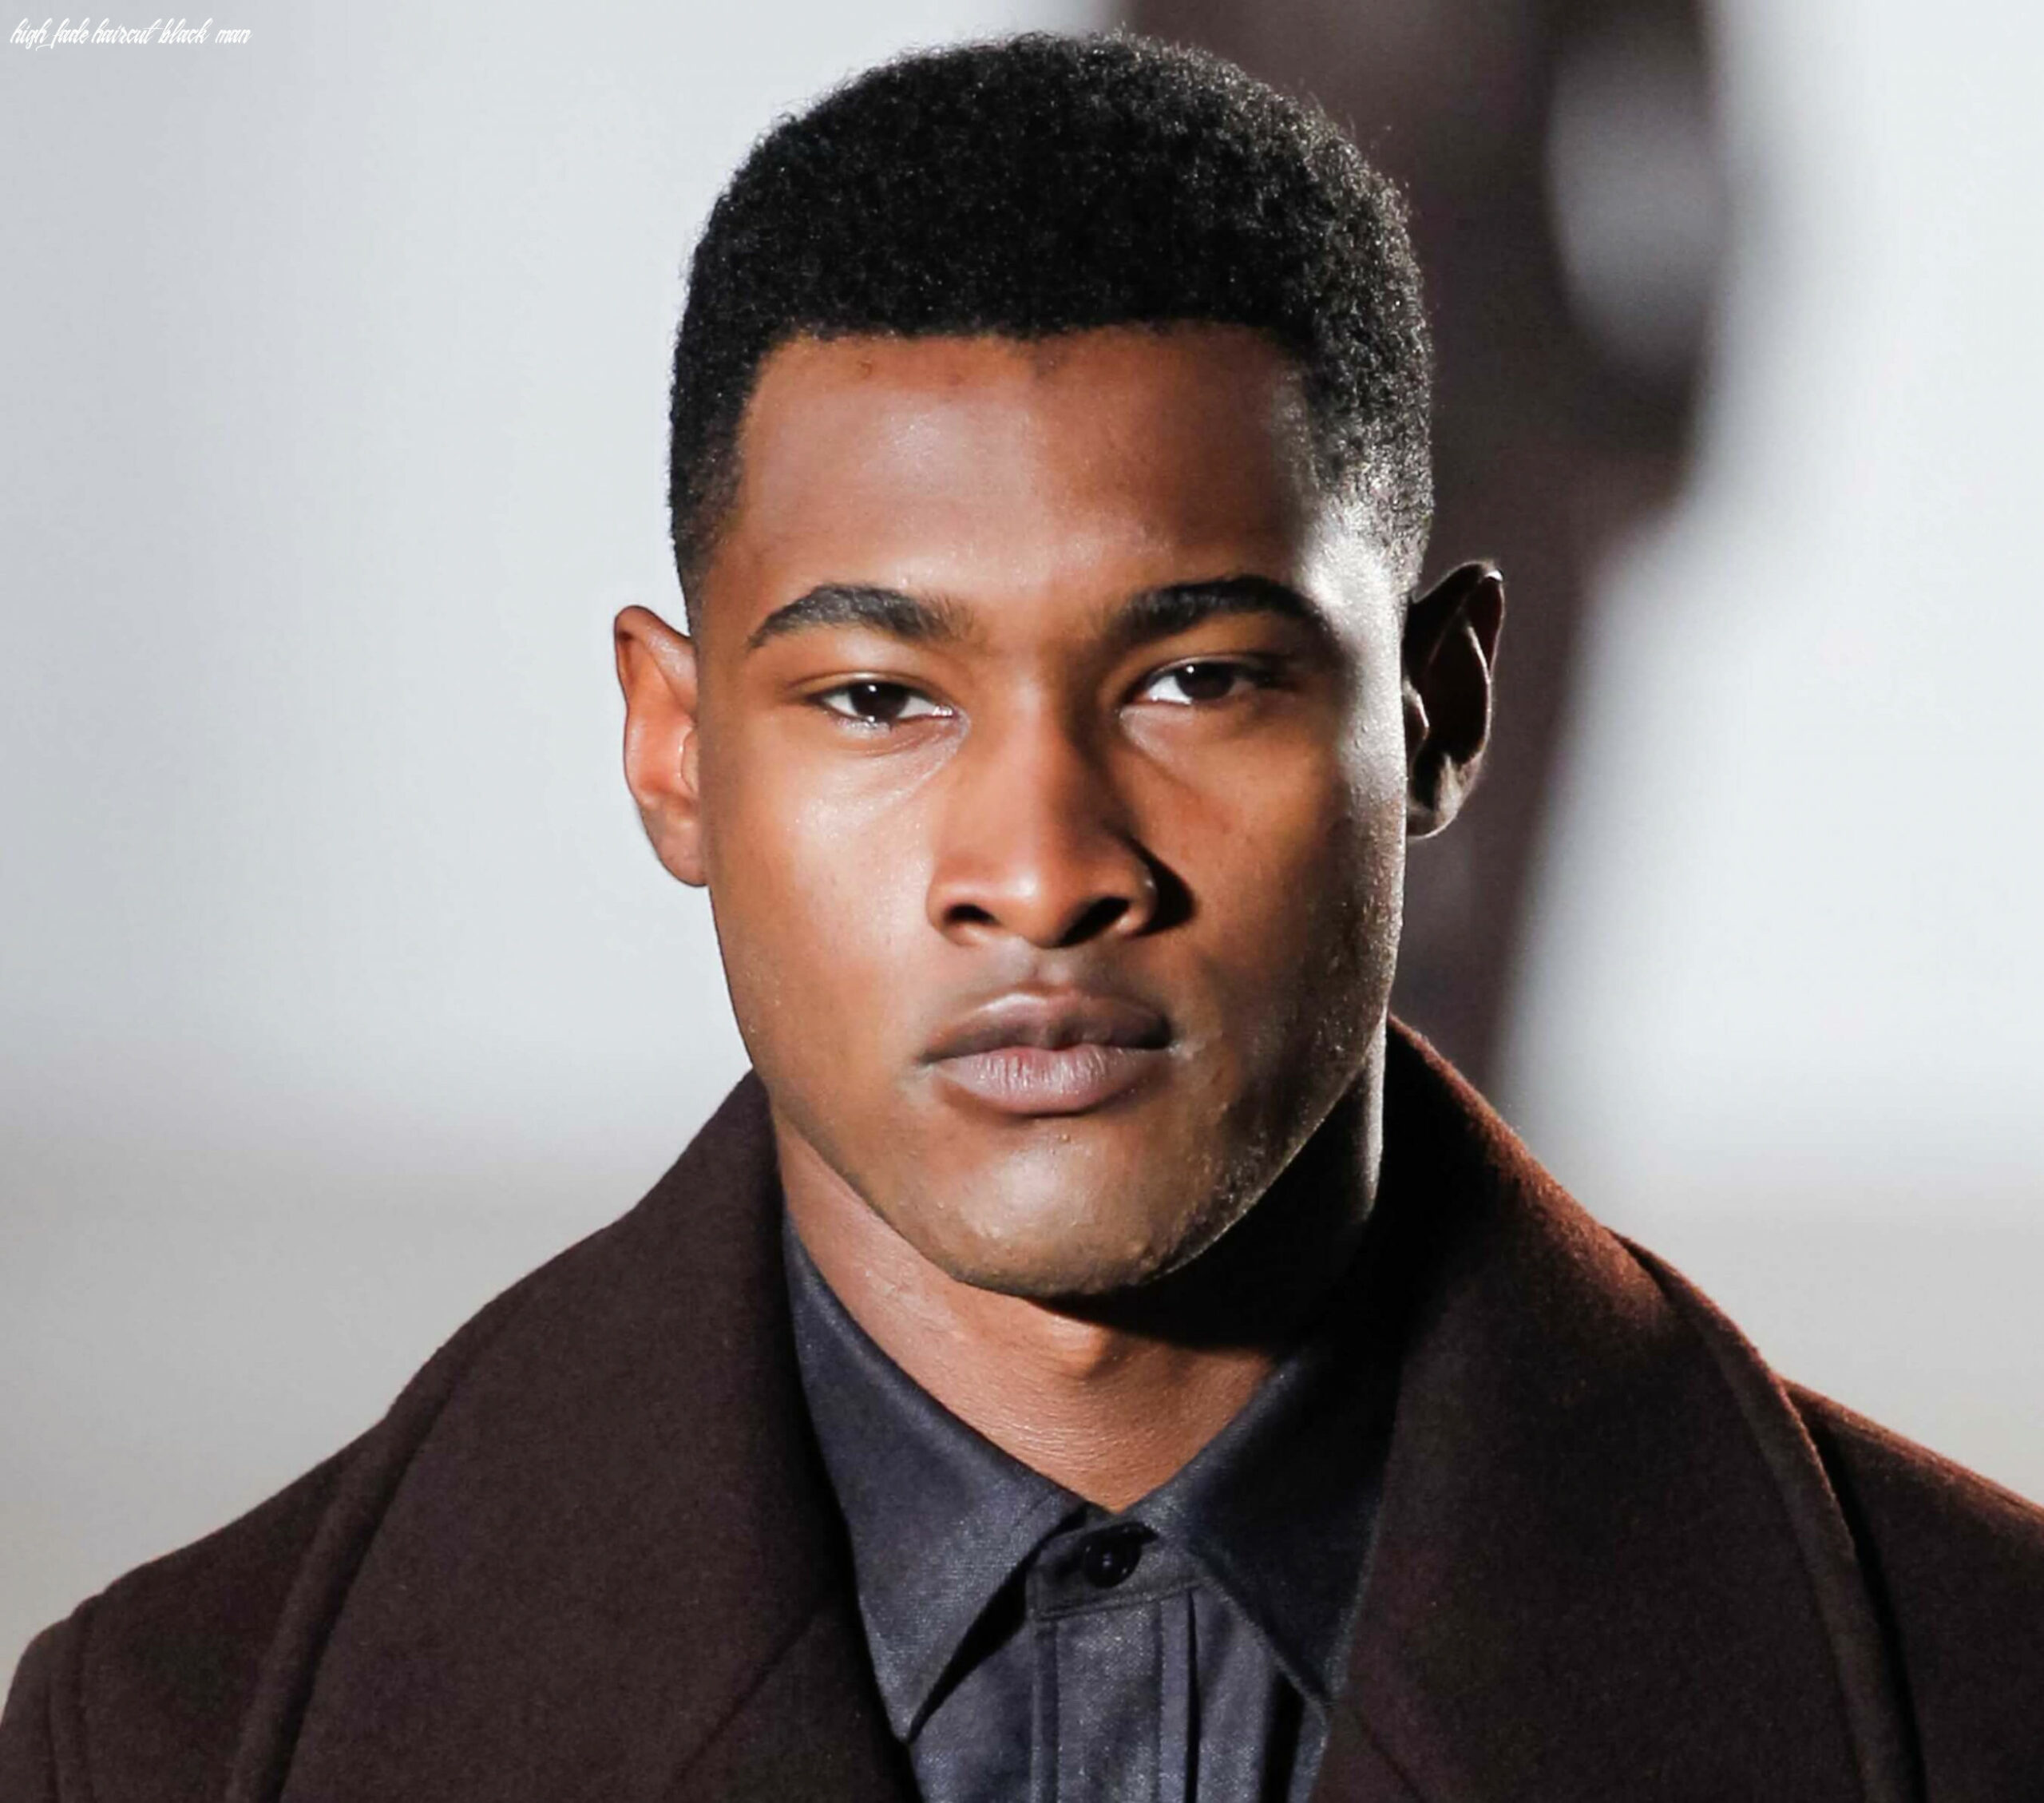 High Top Fade Haircut Guide With Inspiration Gallery